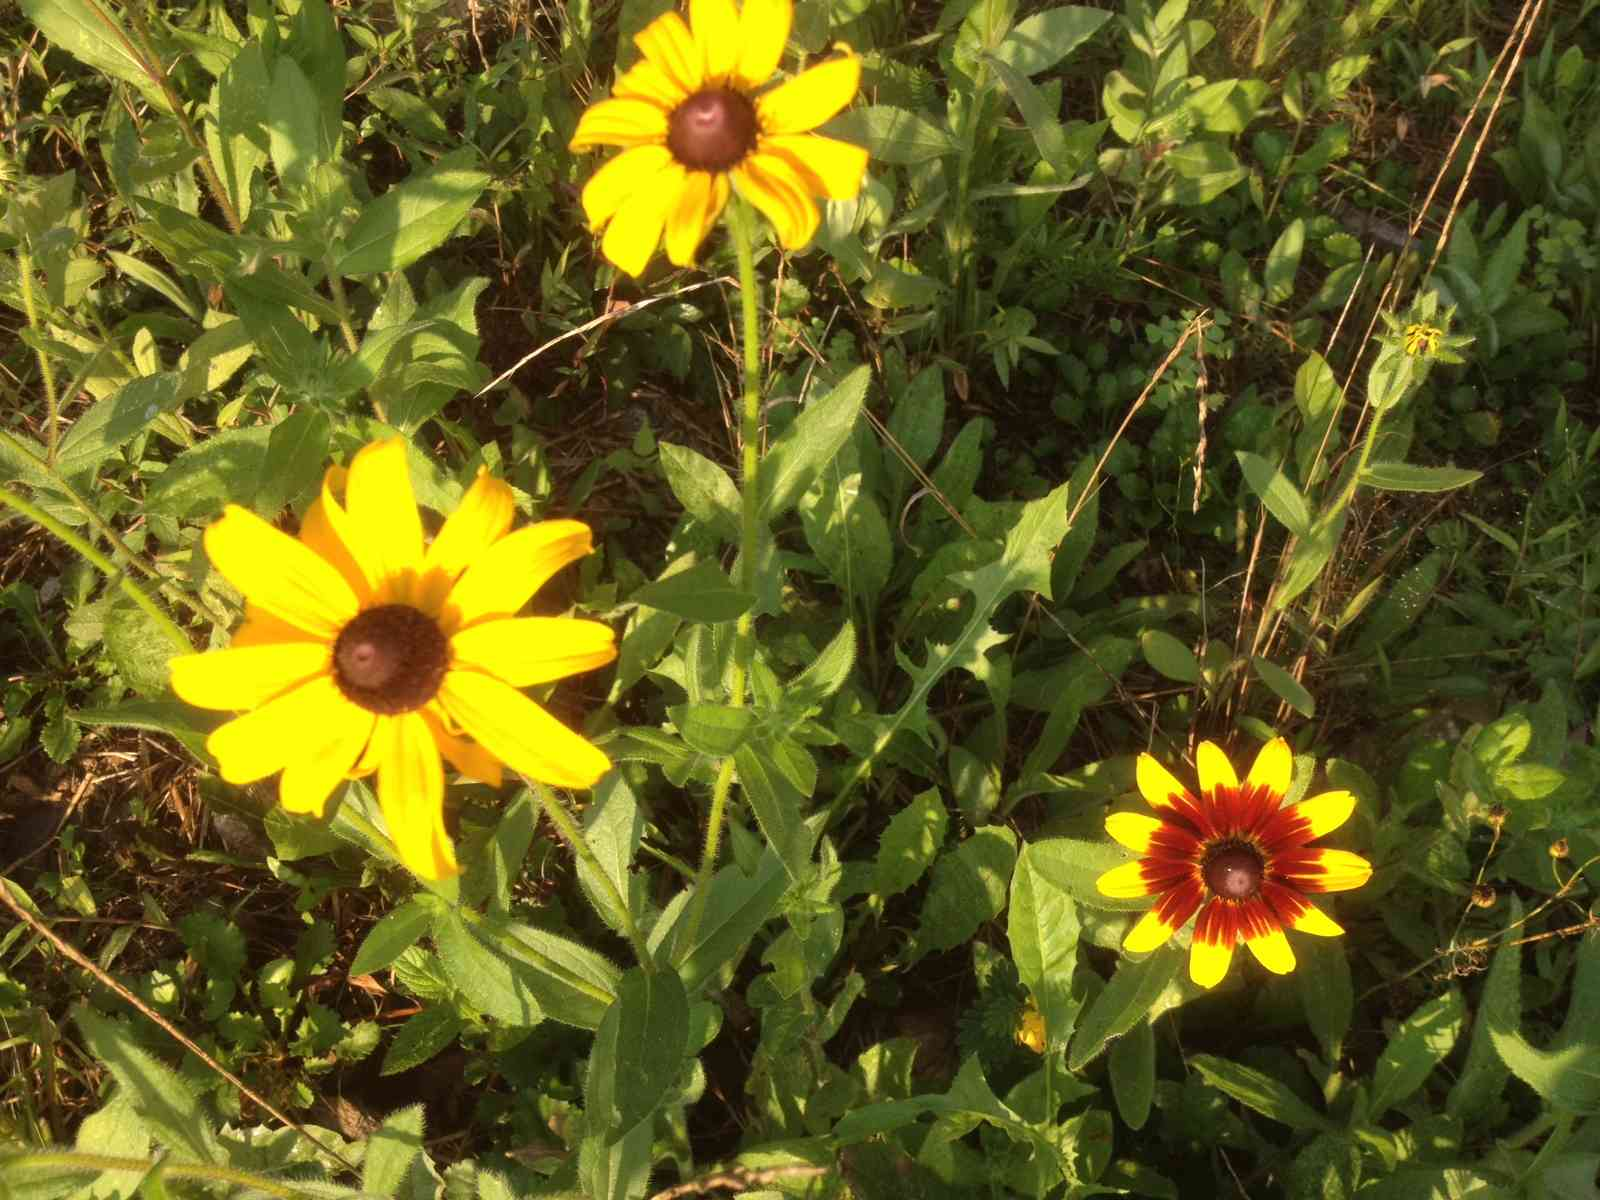 Browned eyed susan is one of the many wild flowers here